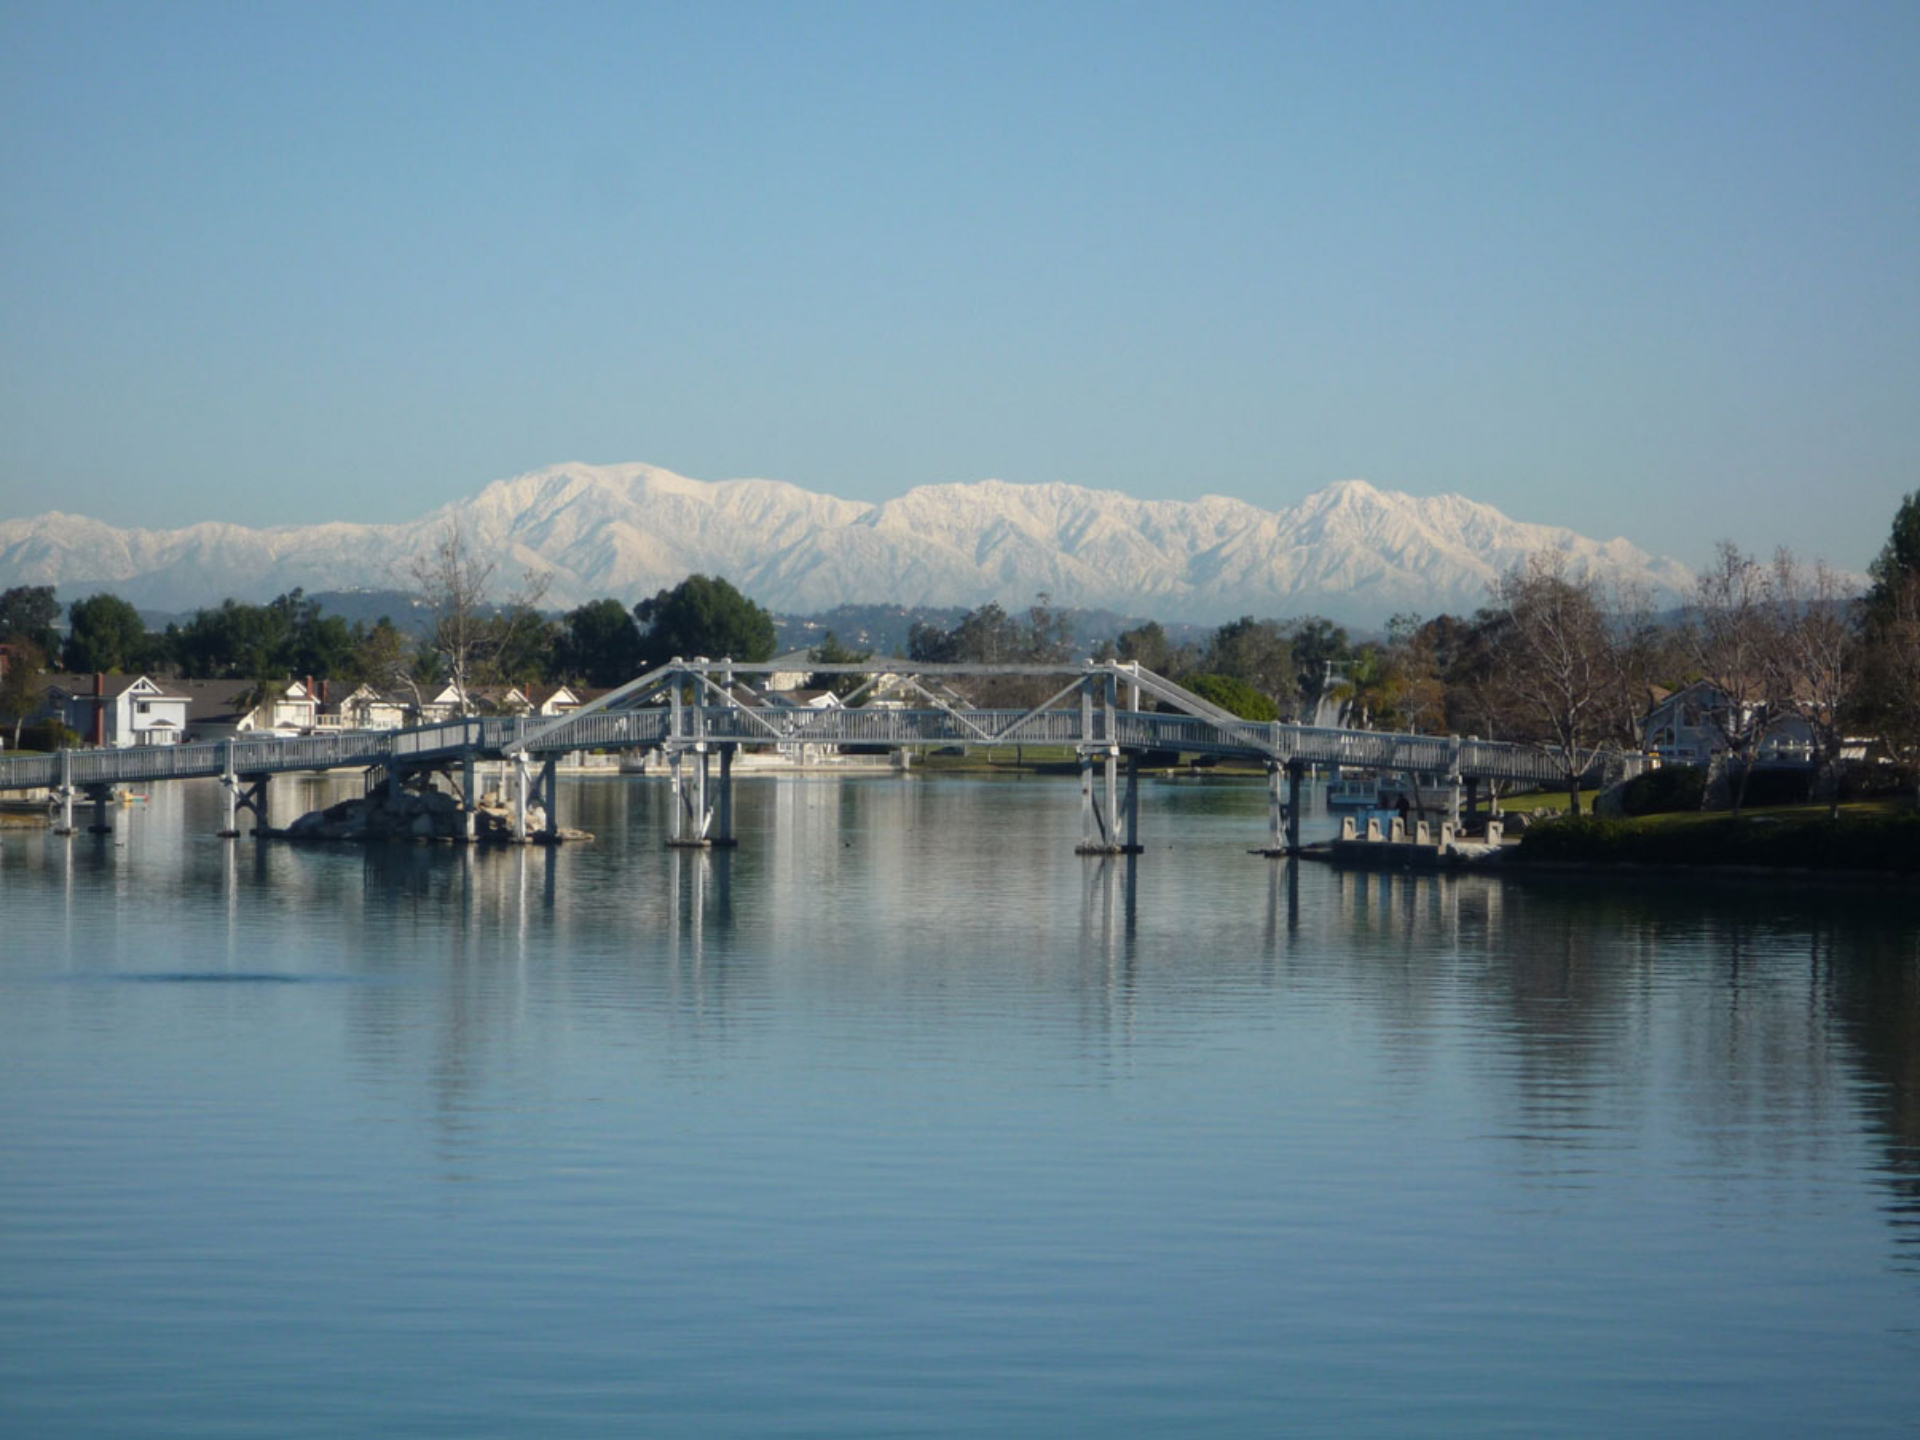 Woodbridge South Lake - snow on the mountains